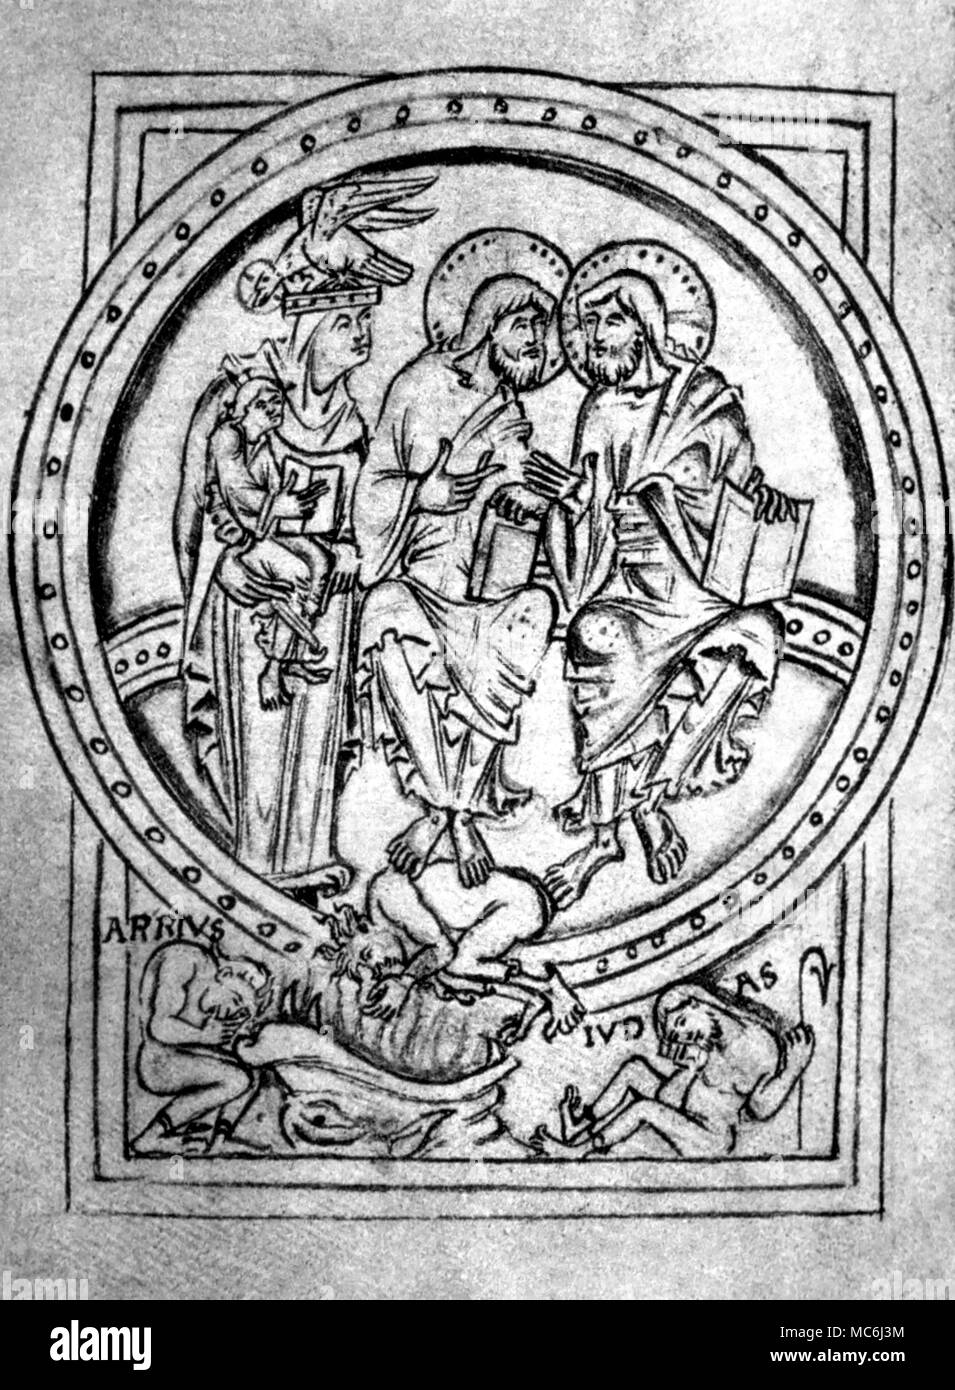 Christian Judas and Satan Page from the Offfices of the Cross and Trinity 1012AD Easter Table for 978-1097 From facsimile of 1878 issued by the Paleographic Society by the manuscript in the BM Cotton Titus D - Stock Image